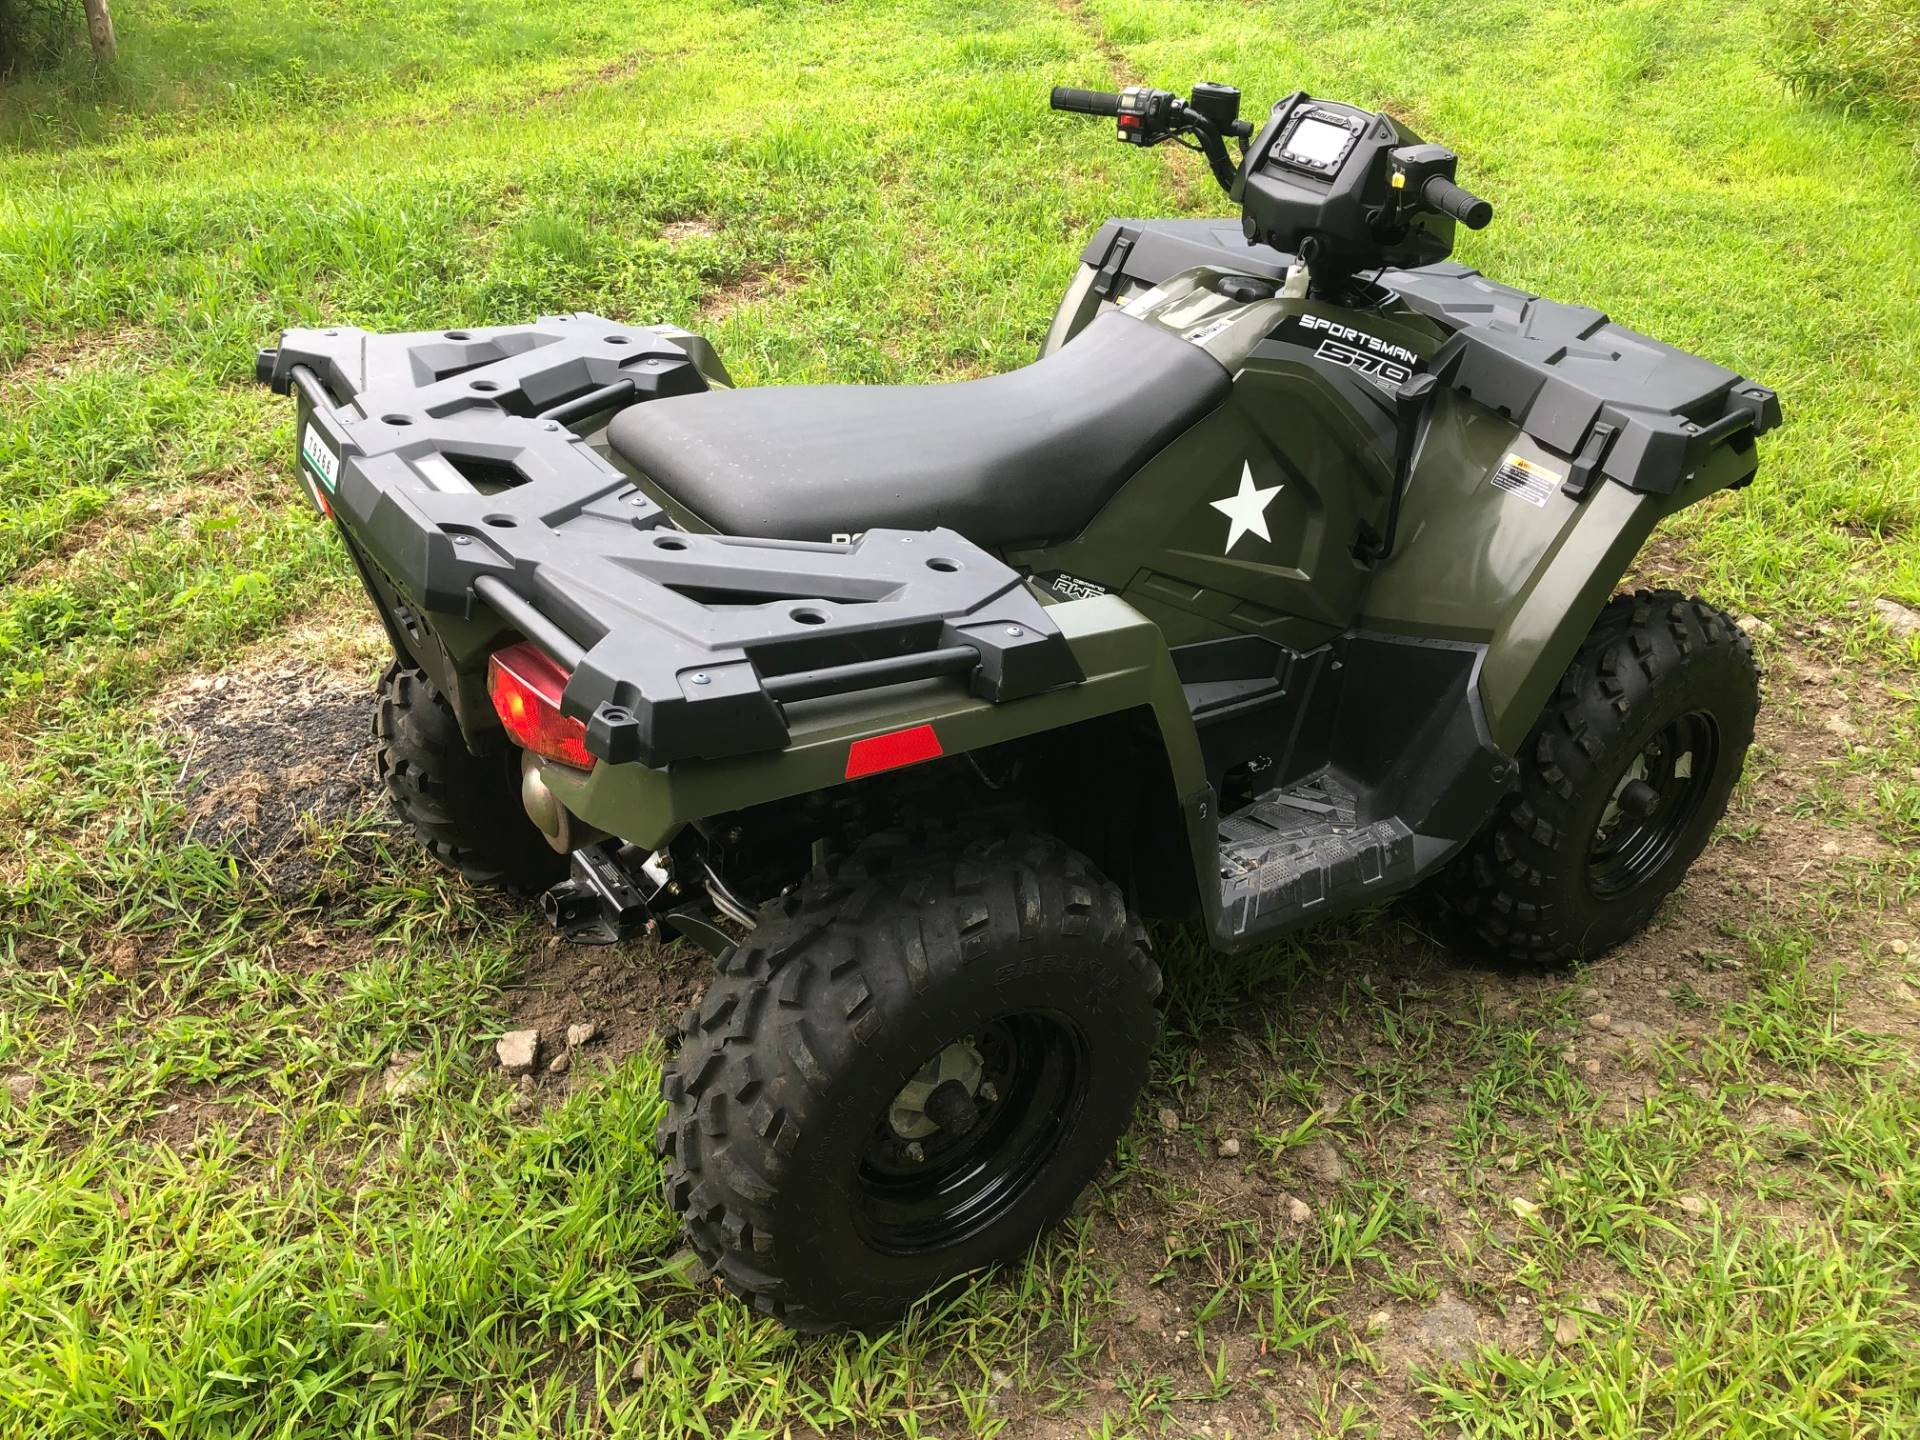 2018 Polaris Sportsman 570 in Milford, New Hampshire - Photo 3